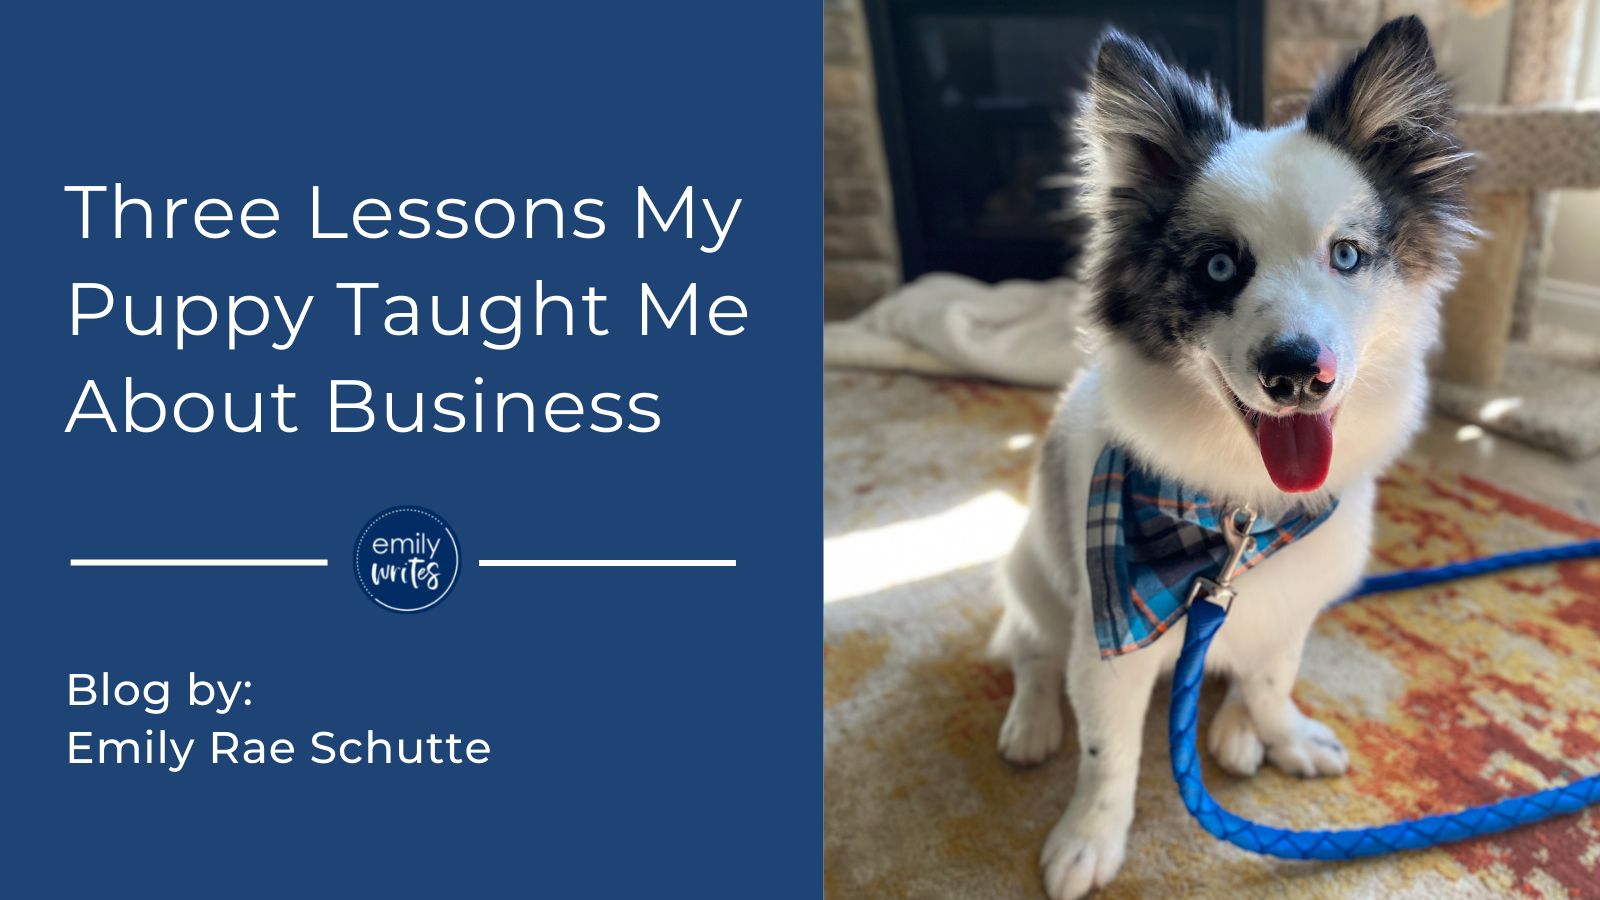 Three Lessons My Puppy Taught Me About Business